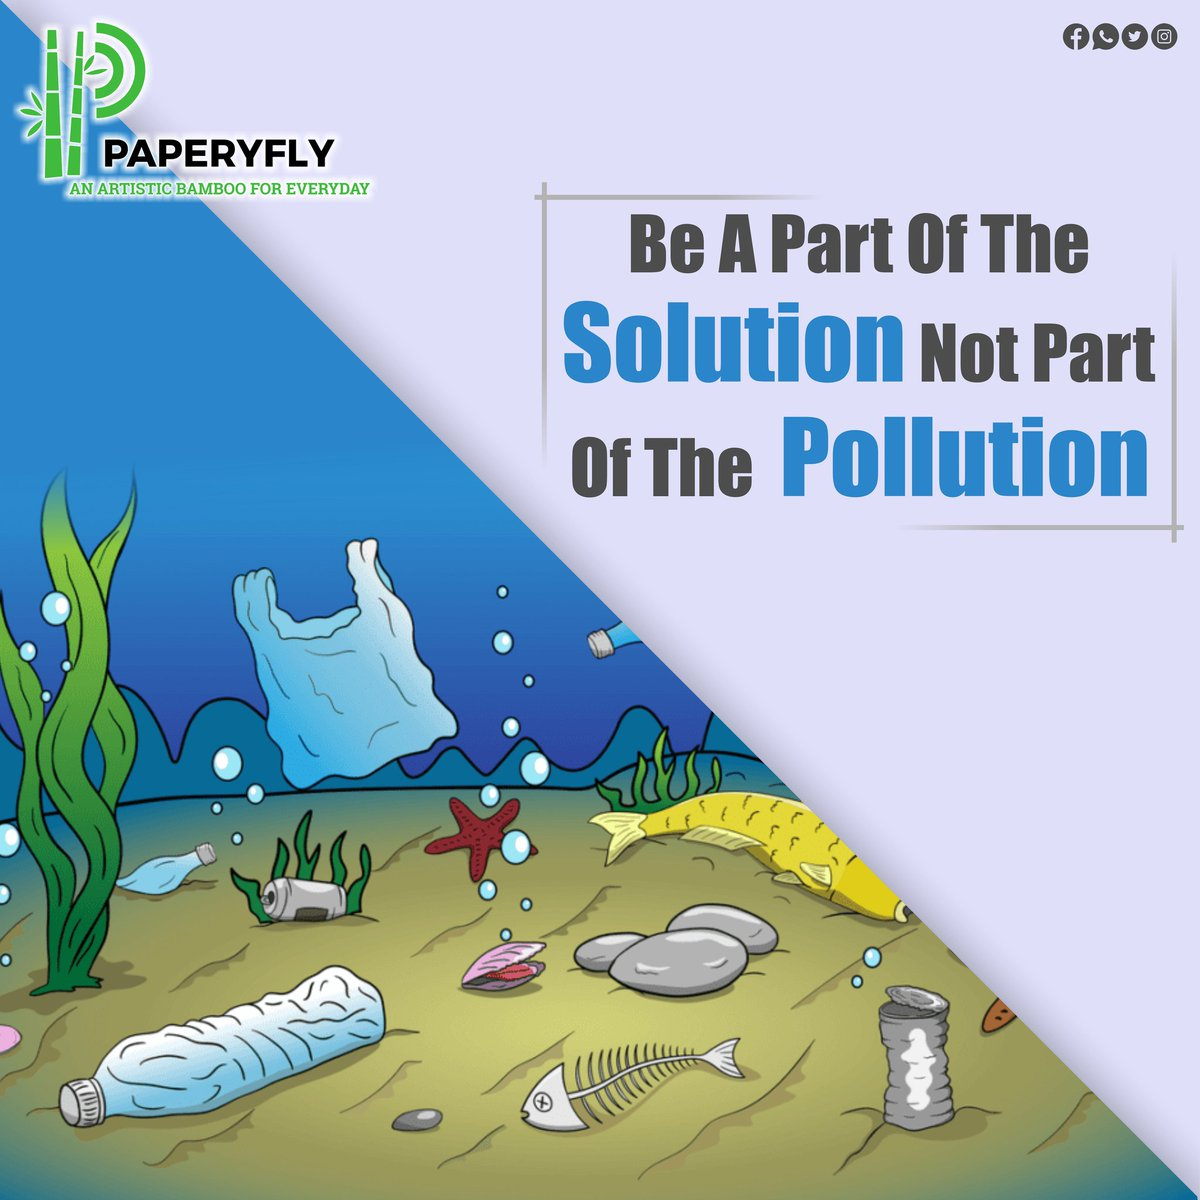 Be a part of the solution not the part of pollution. Stop using plastic at home, choose biodegradable things. #ClimateEmergency #ClimateAction #plasticfreehomes #environment  #प्लास्टिक_मुक्त_घर अभियान #मराठी_उद्योजक  #tuesdayvibe